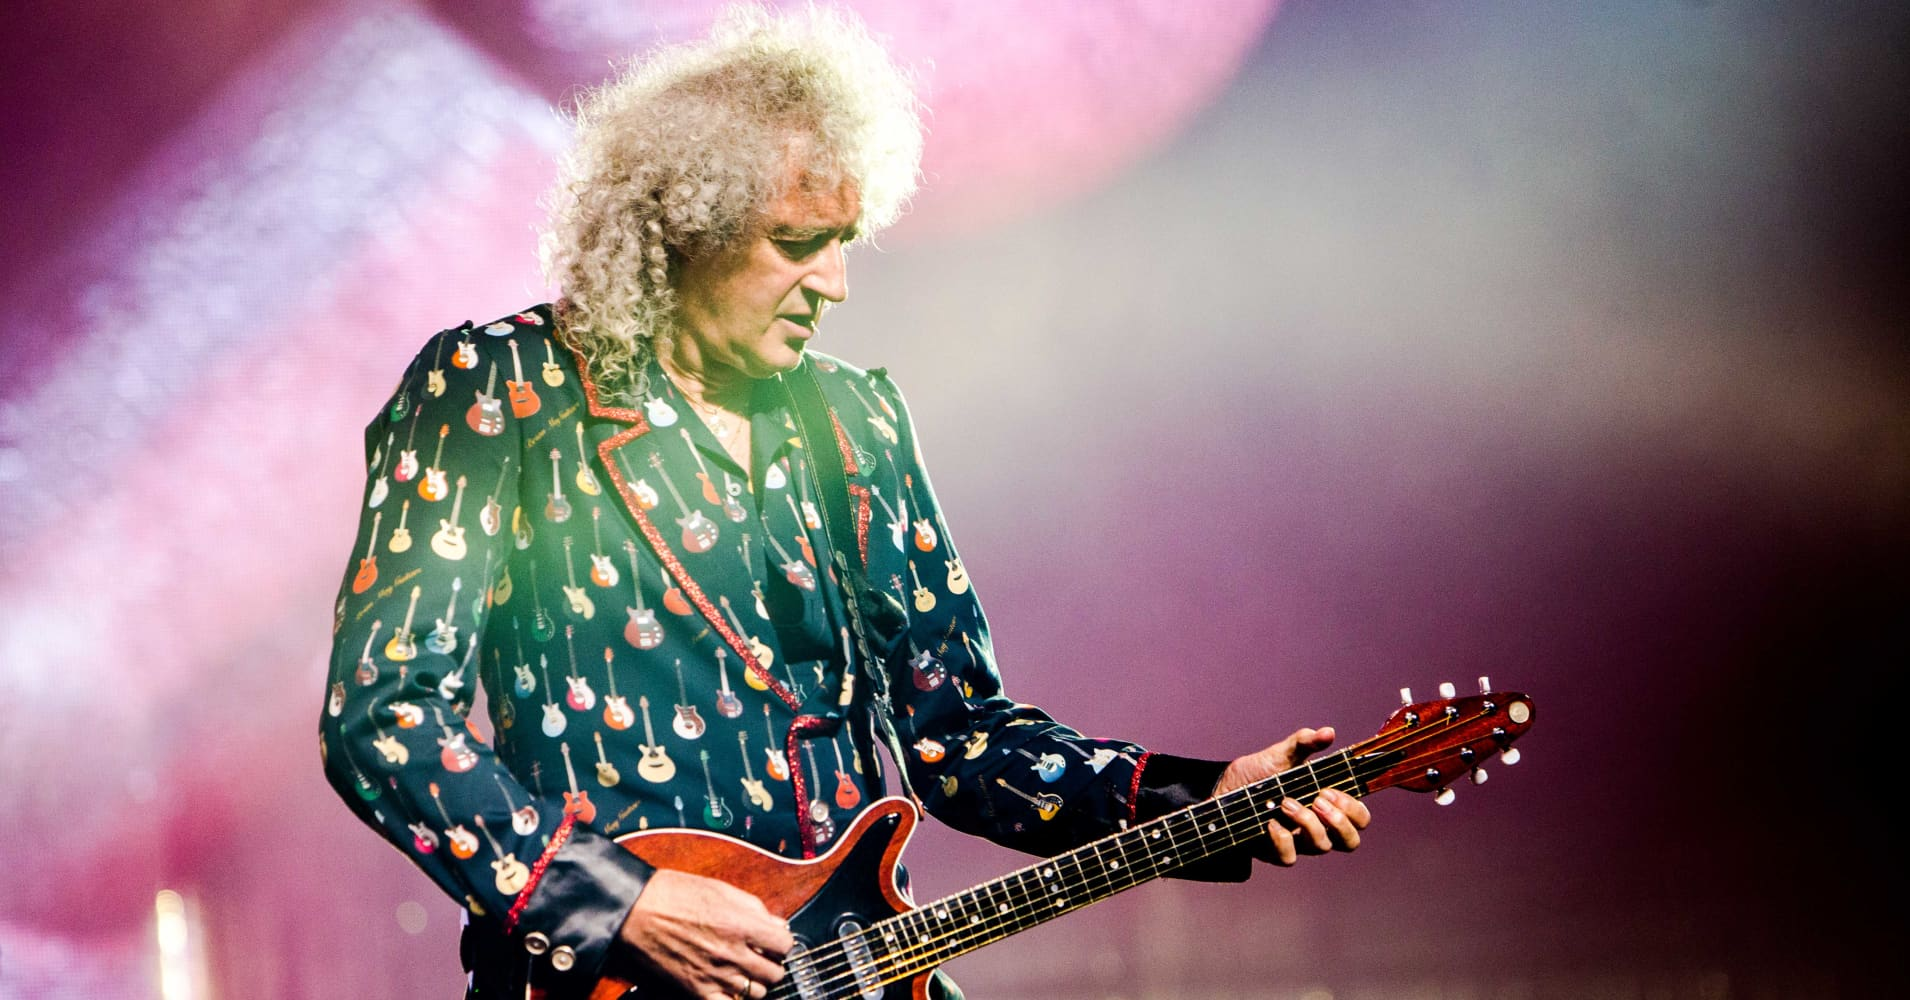 Queen guitarist Brian May has just released his new single 'New Horizons', on January 2019. The track is May's first solo single in more than 20 years. (Photo by Mairo Cinquetti/NurPhoto via Getty Images)